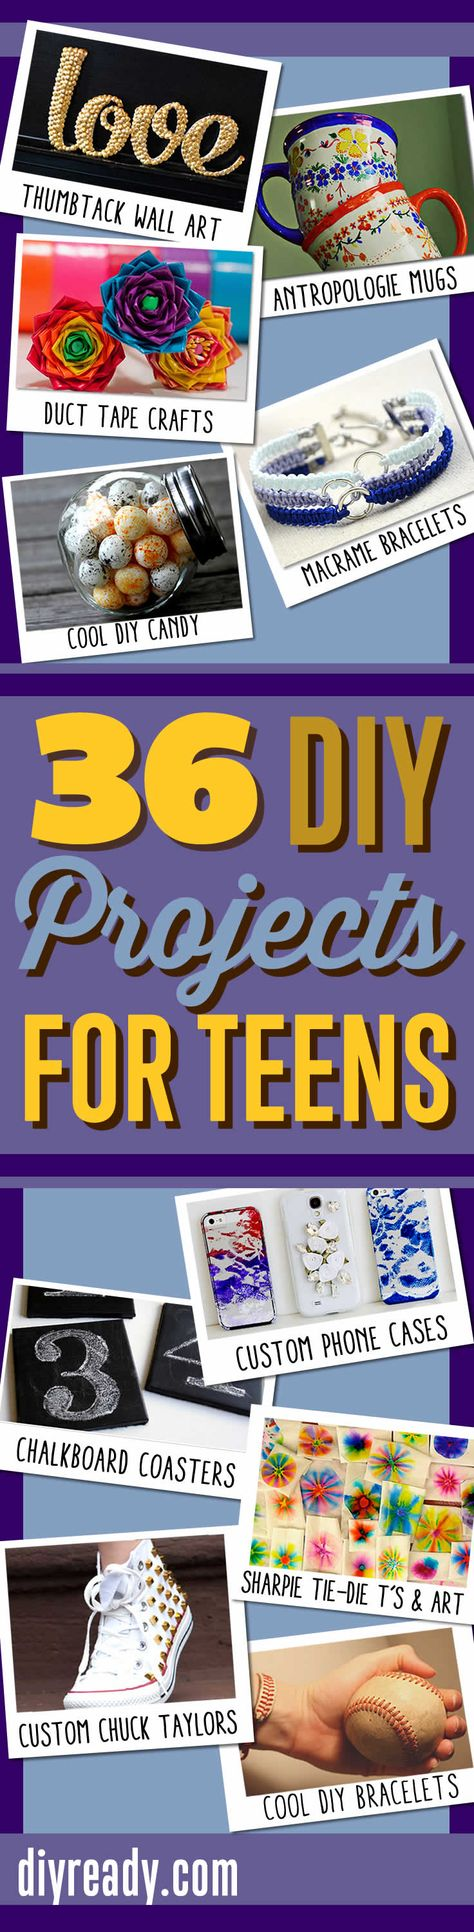 Projects For Teenagers | 39 Cool DIY Crafts For Teens | DIY Projects